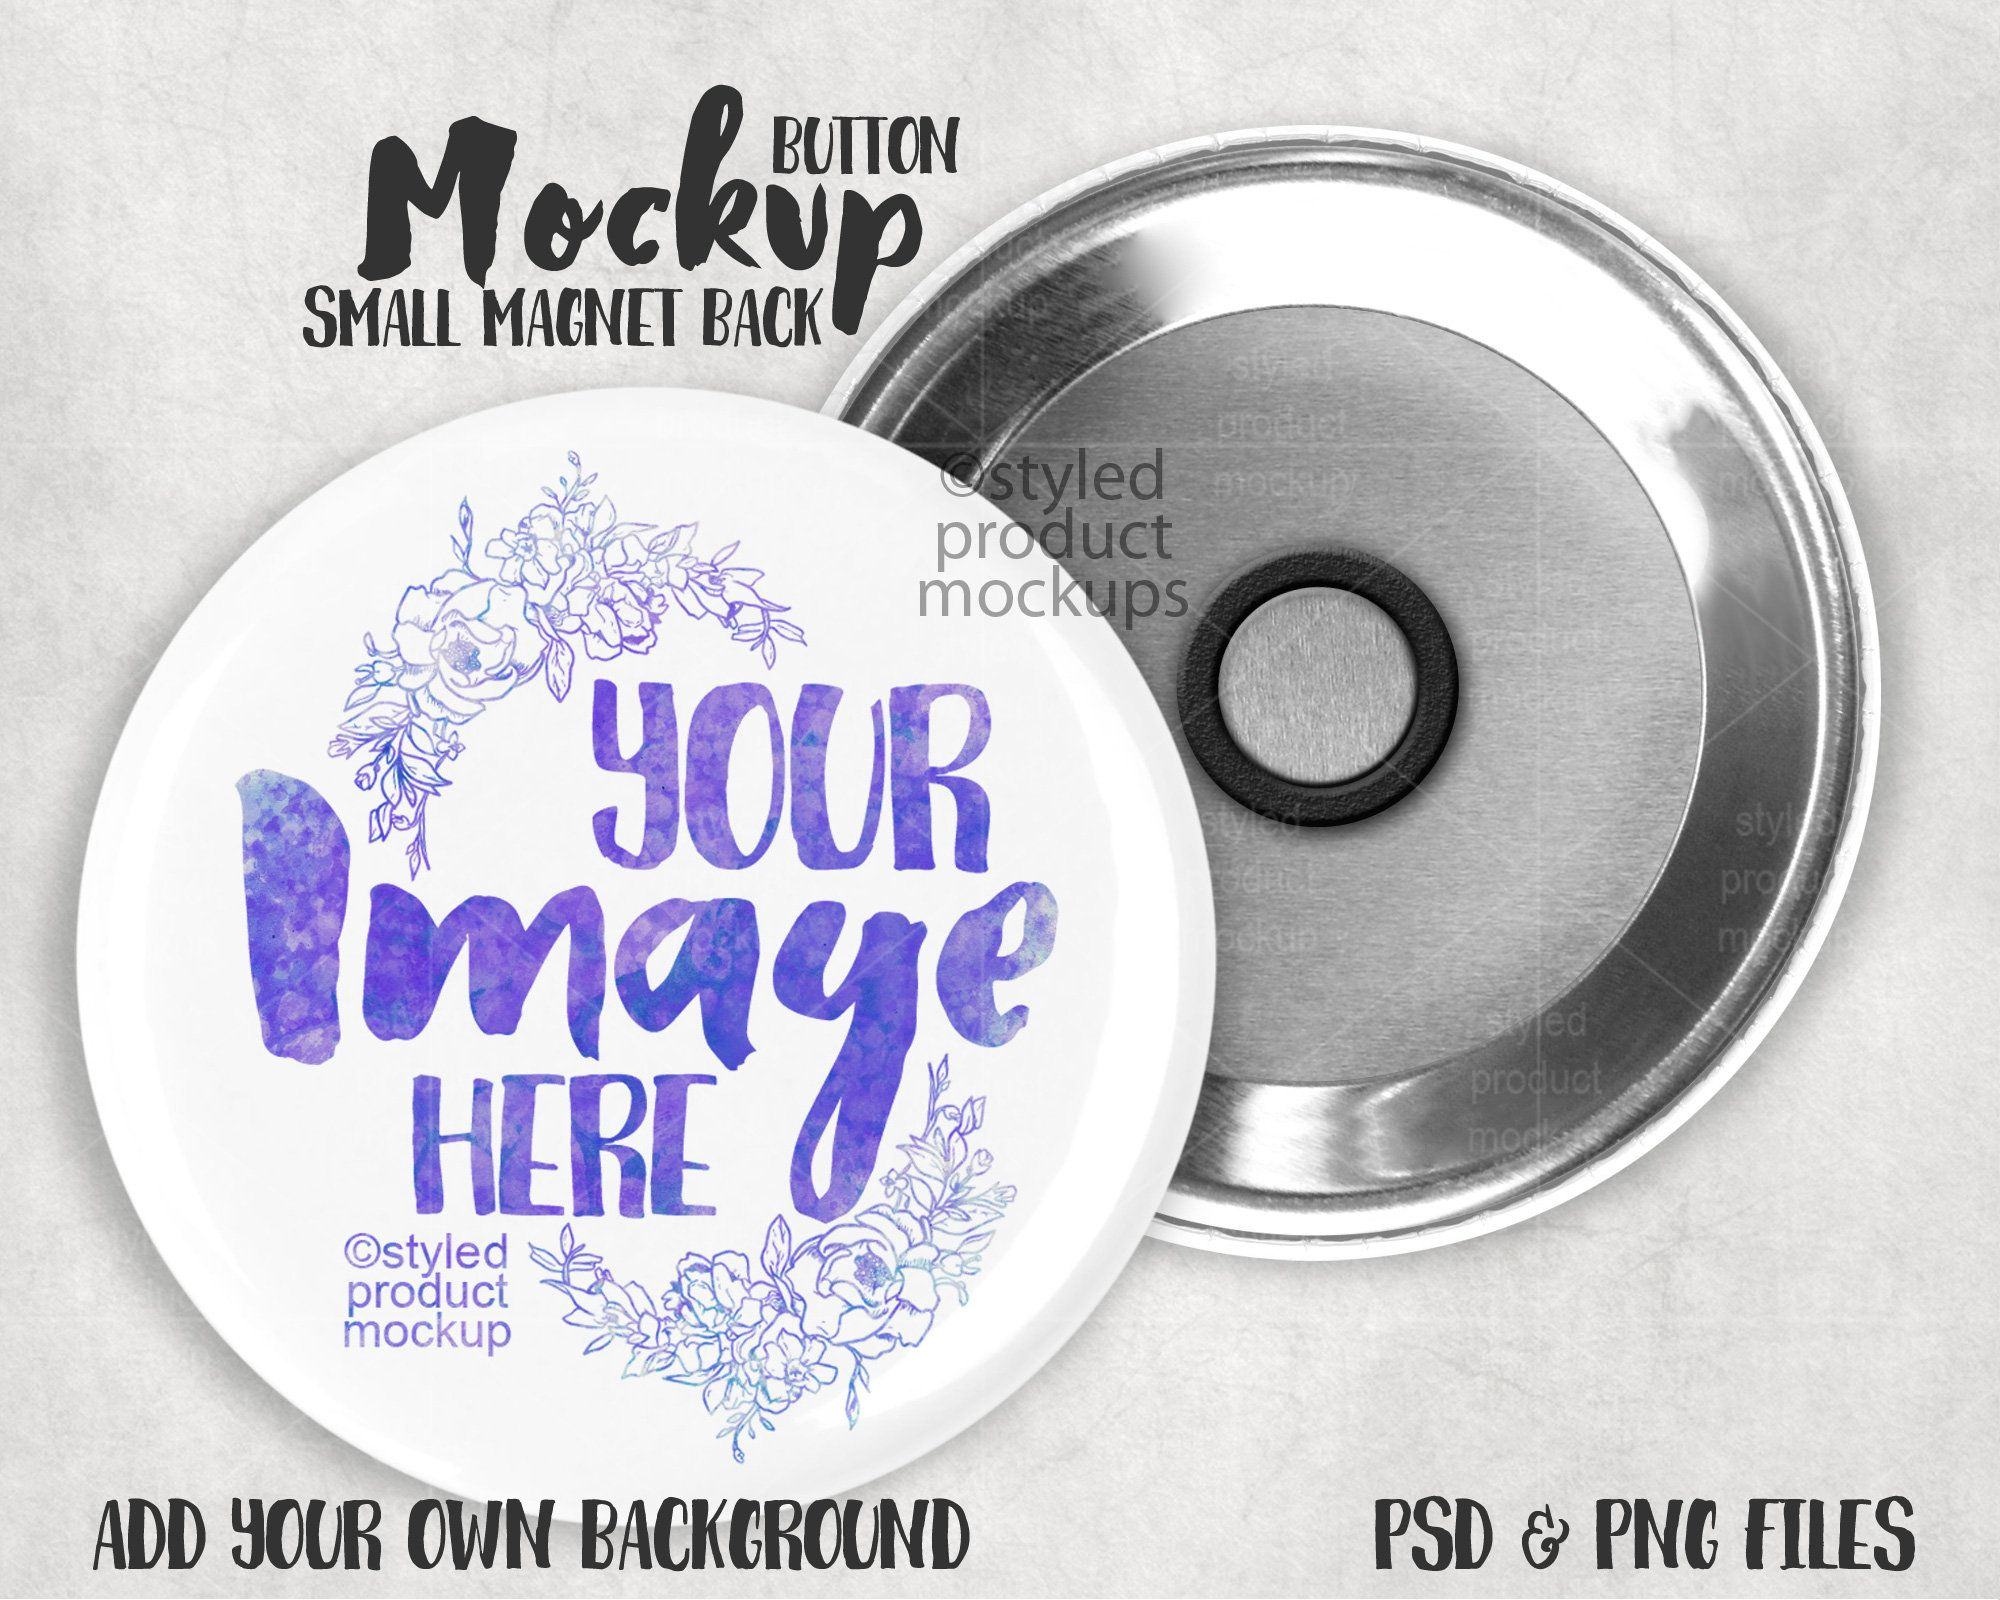 Small Magnet Button Mockup Add Your Own Image And Background Small Magnets Mockup Buttons